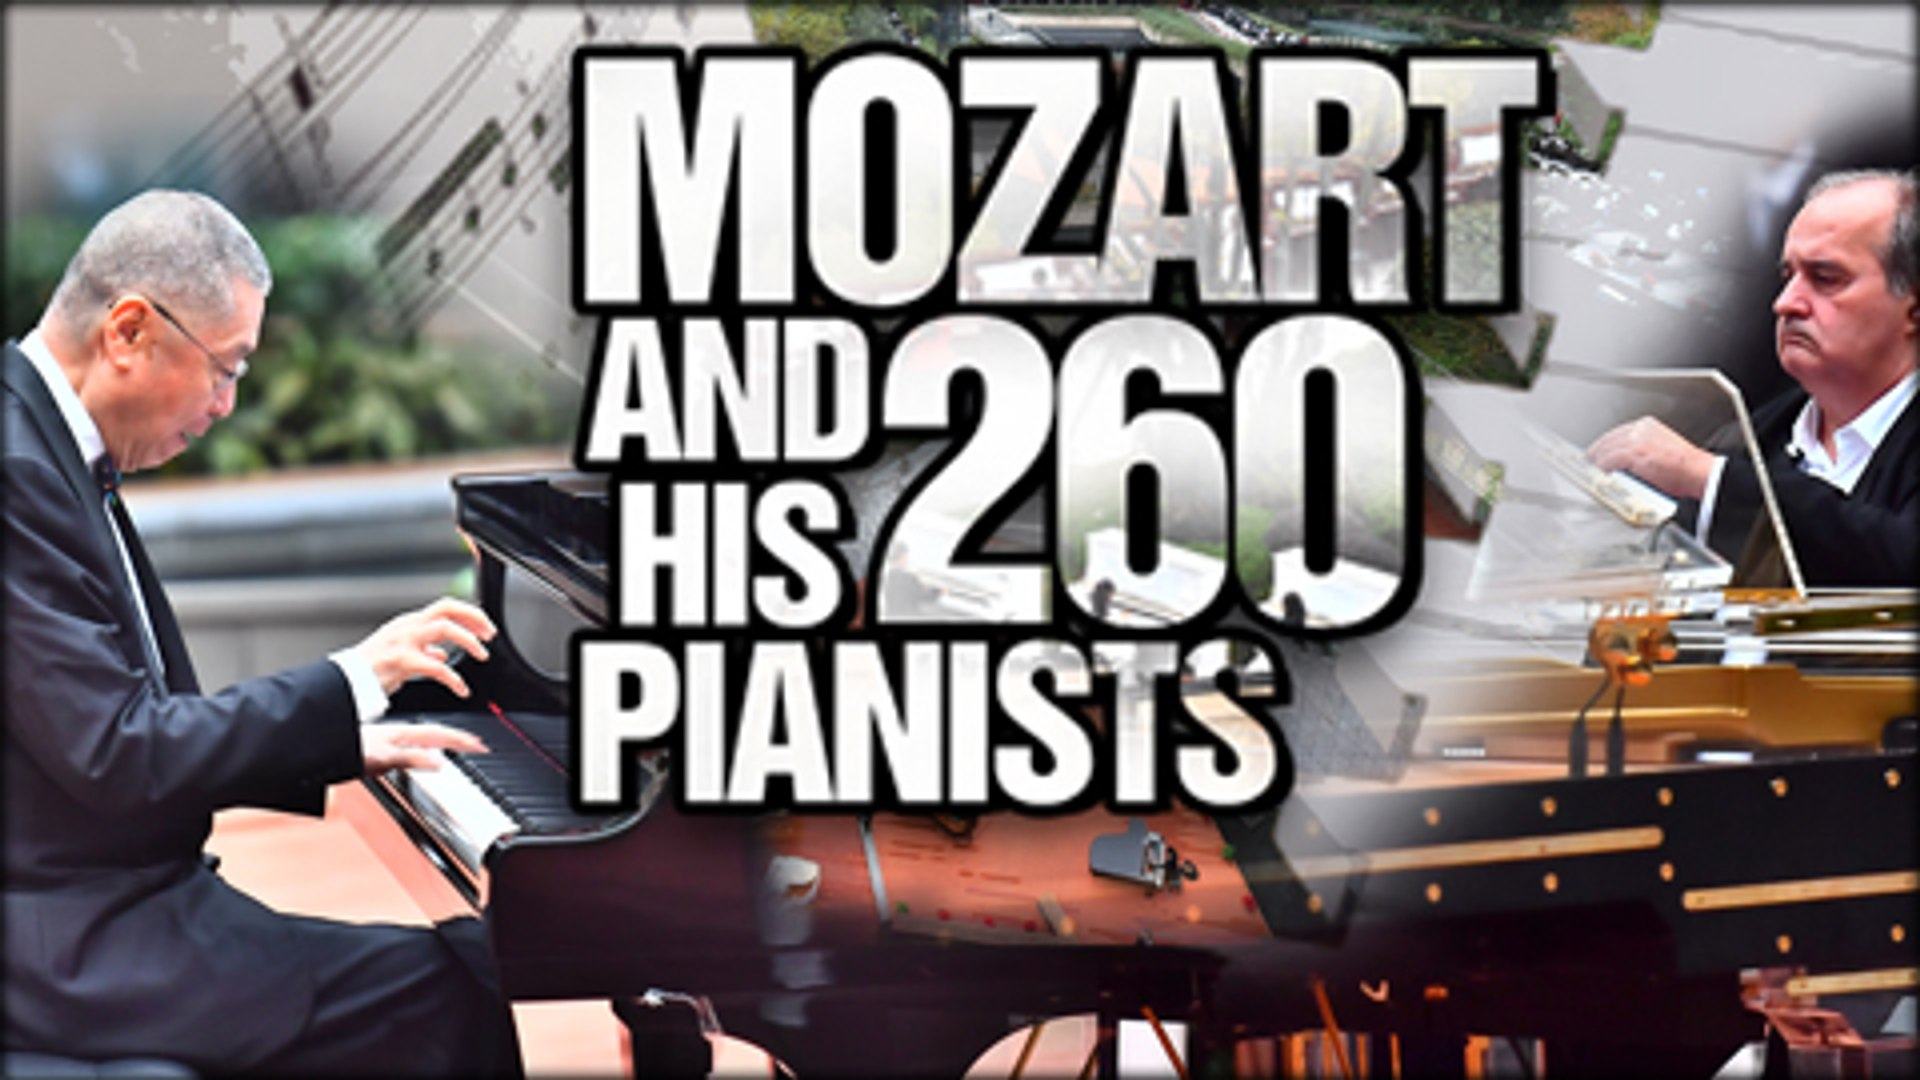 Mozart And His 260 Pianists (2017) - Trailer (Documentary, Music, Family)